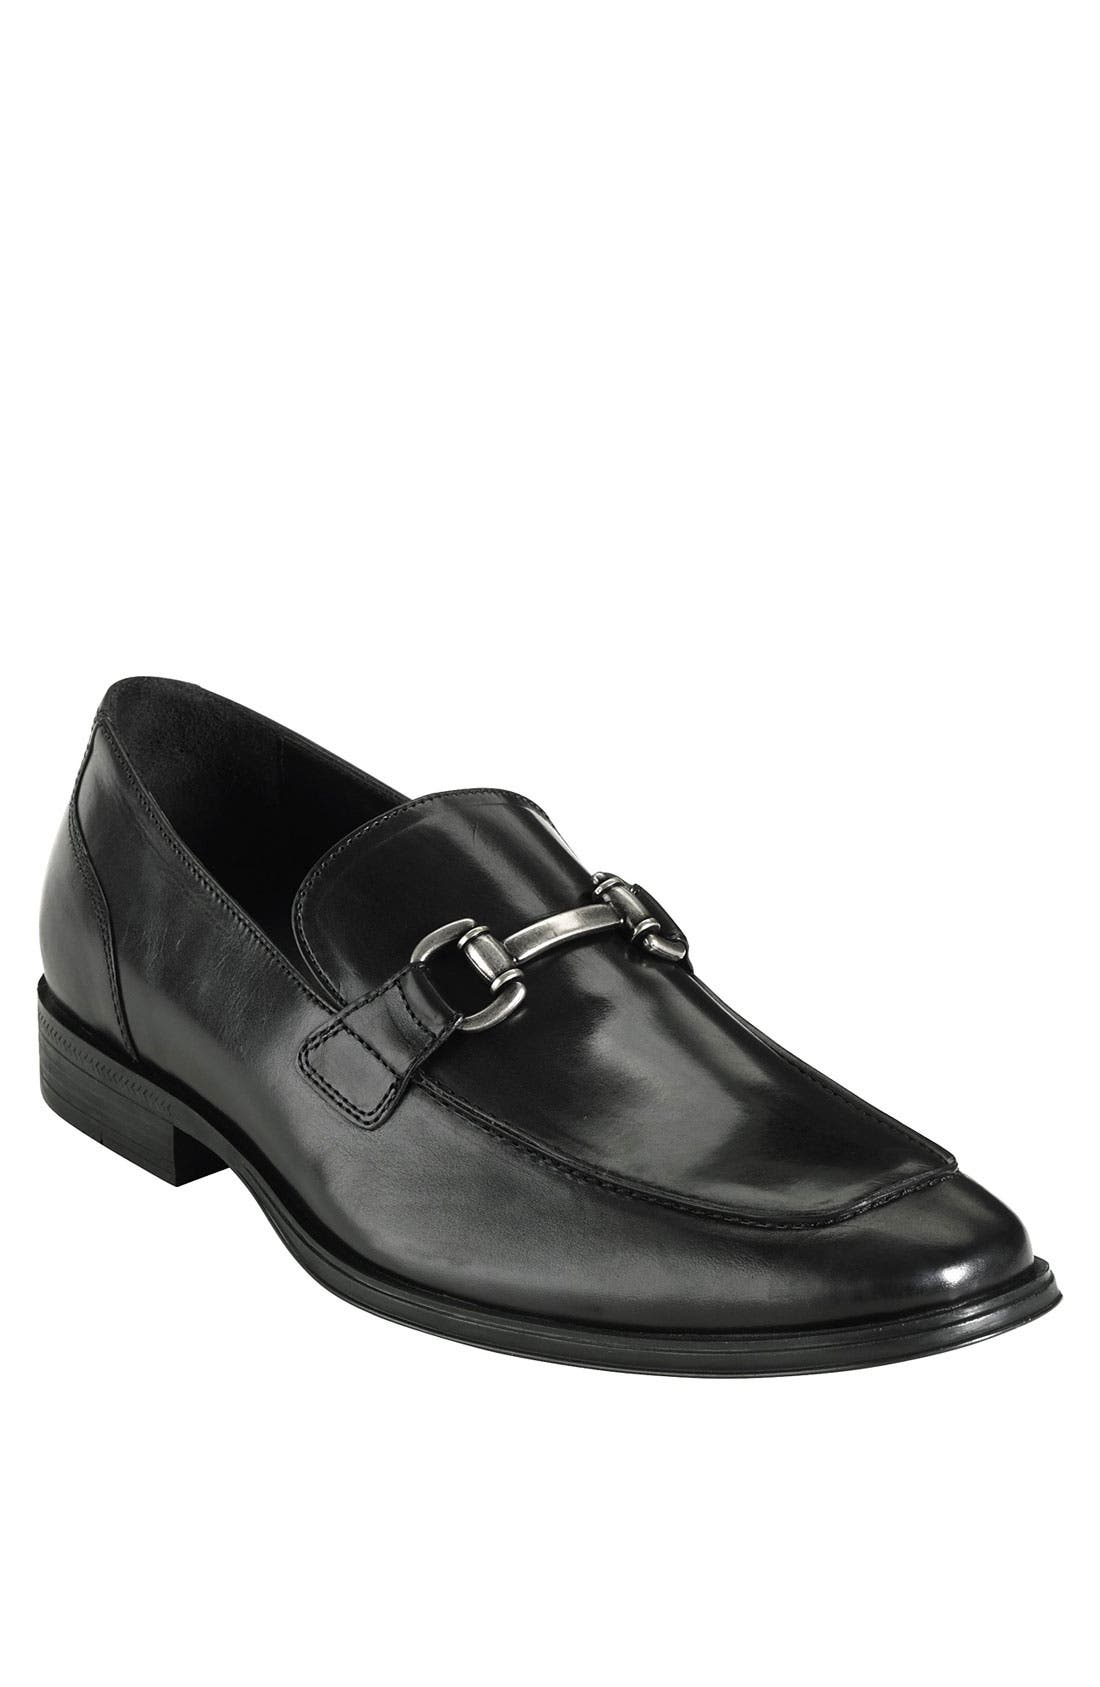 Alternate Image 1 Selected - Cole Haan 'Air Adams' Loafer (Online Only)